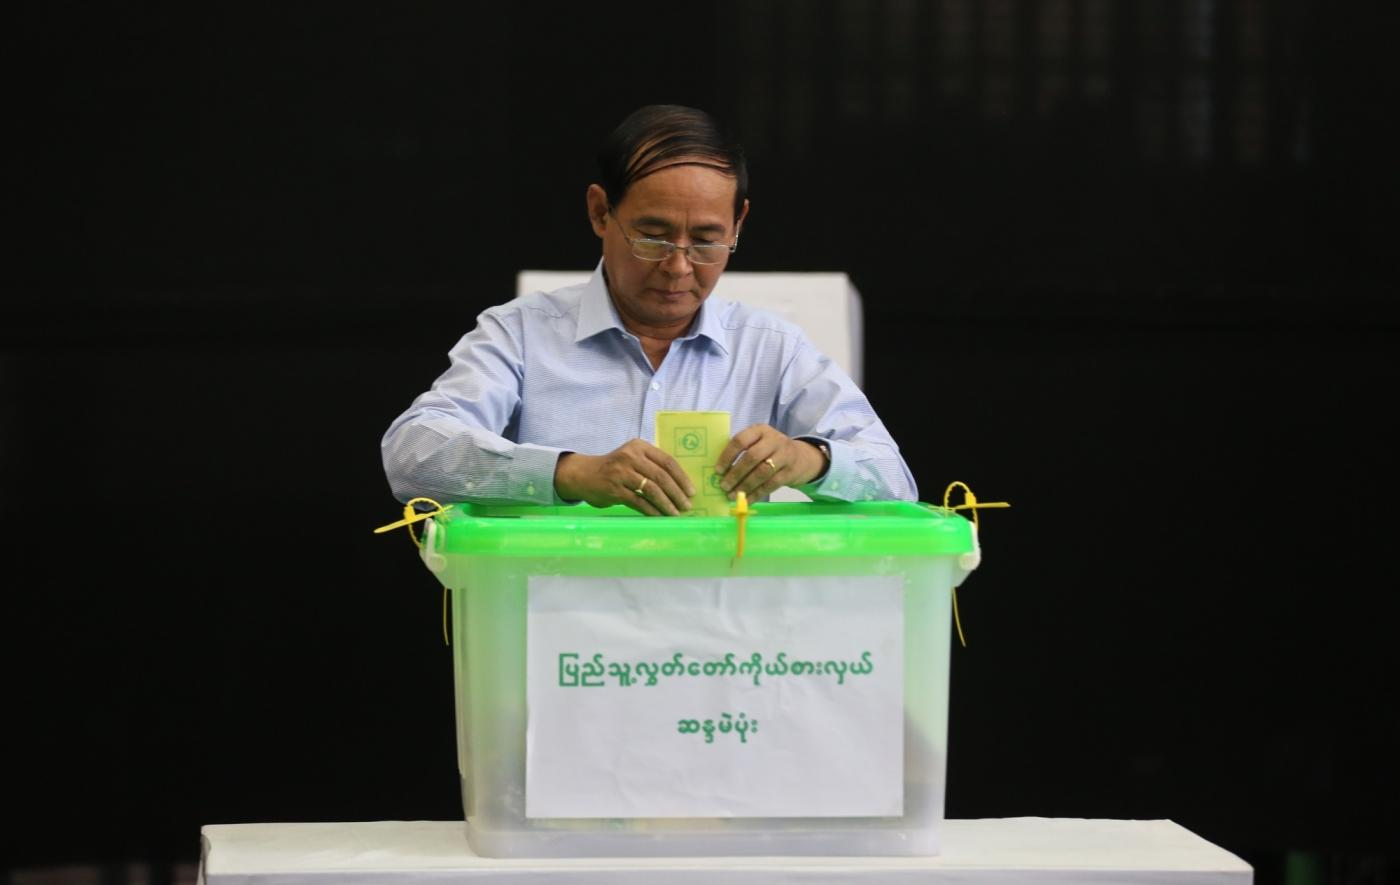 YANGON, Nov. 3, 2018 (Xinhua) -- Myanmar President U Win Myint casts ballot at a polling station in Yangon, Myanmar, Nov. 3, 2018. Myanmar President U Win Myint cast his votes in Yangon's Tarmwe township constituency on Saturday, hours after the country's parliamentary by-elections kicked off in the morning. (Xinhua/U Aung/IANS) by .